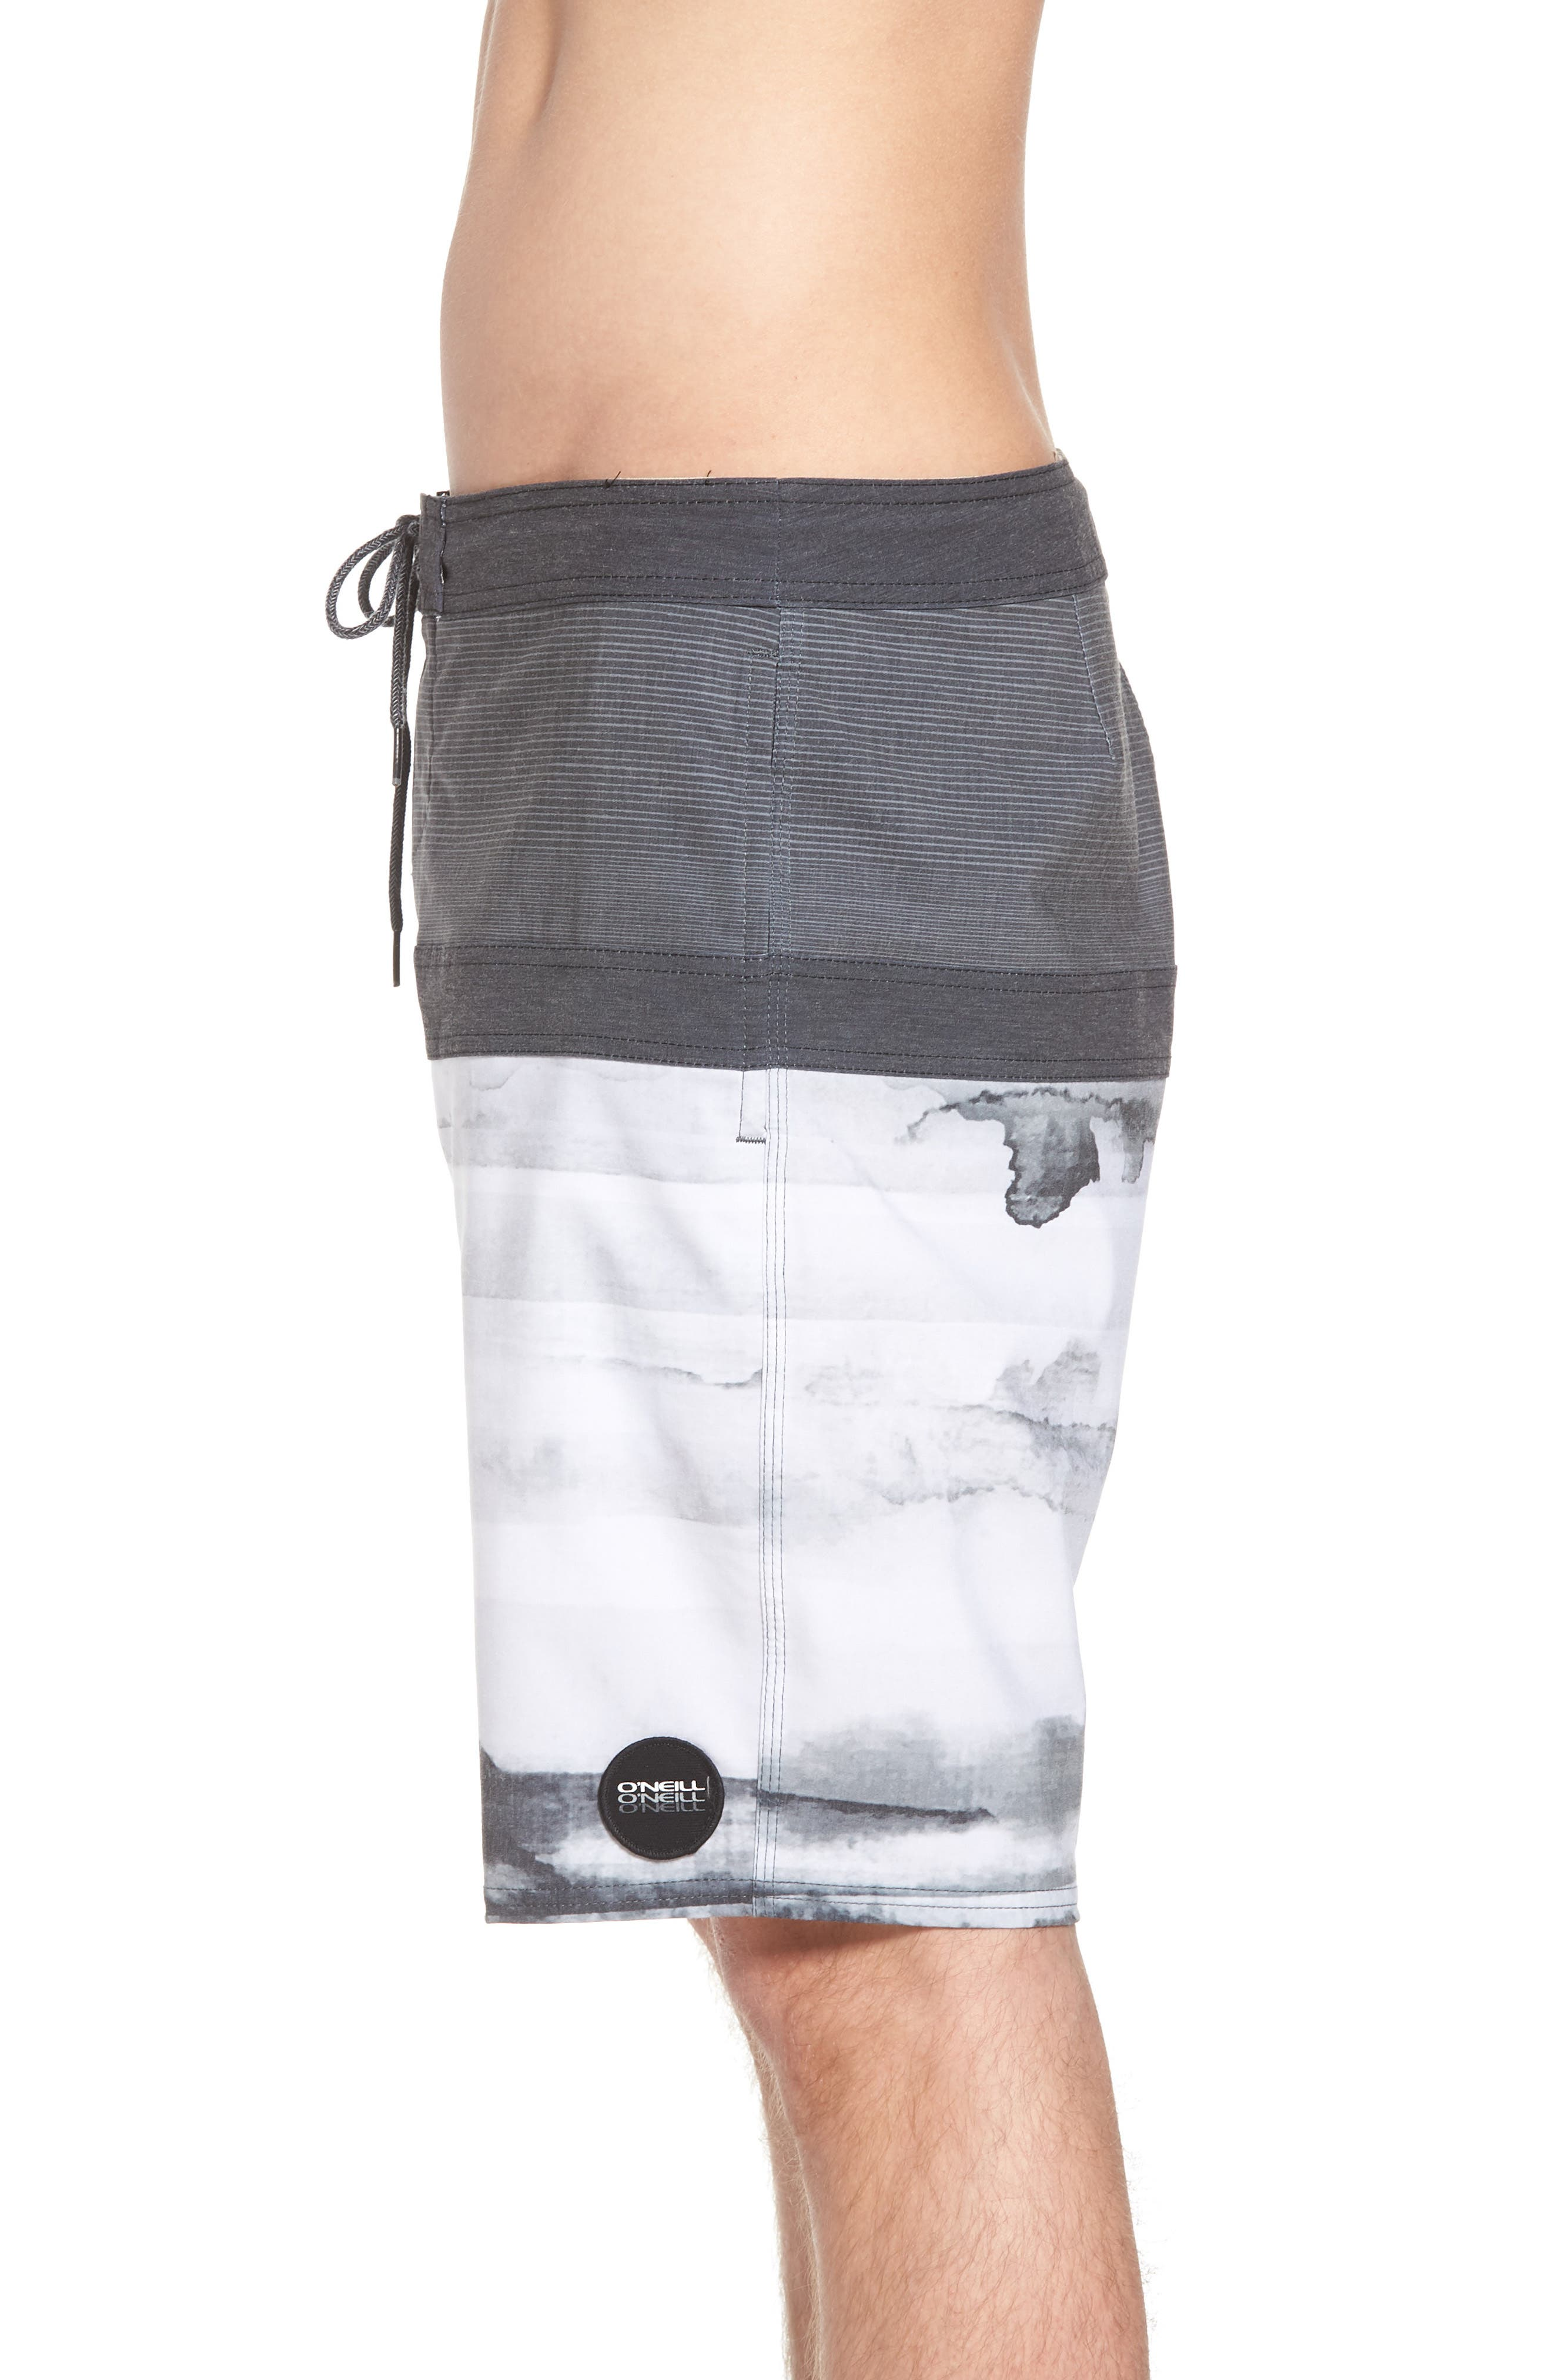 Breaker Cruzer Board Shorts,                             Alternate thumbnail 3, color,                             001